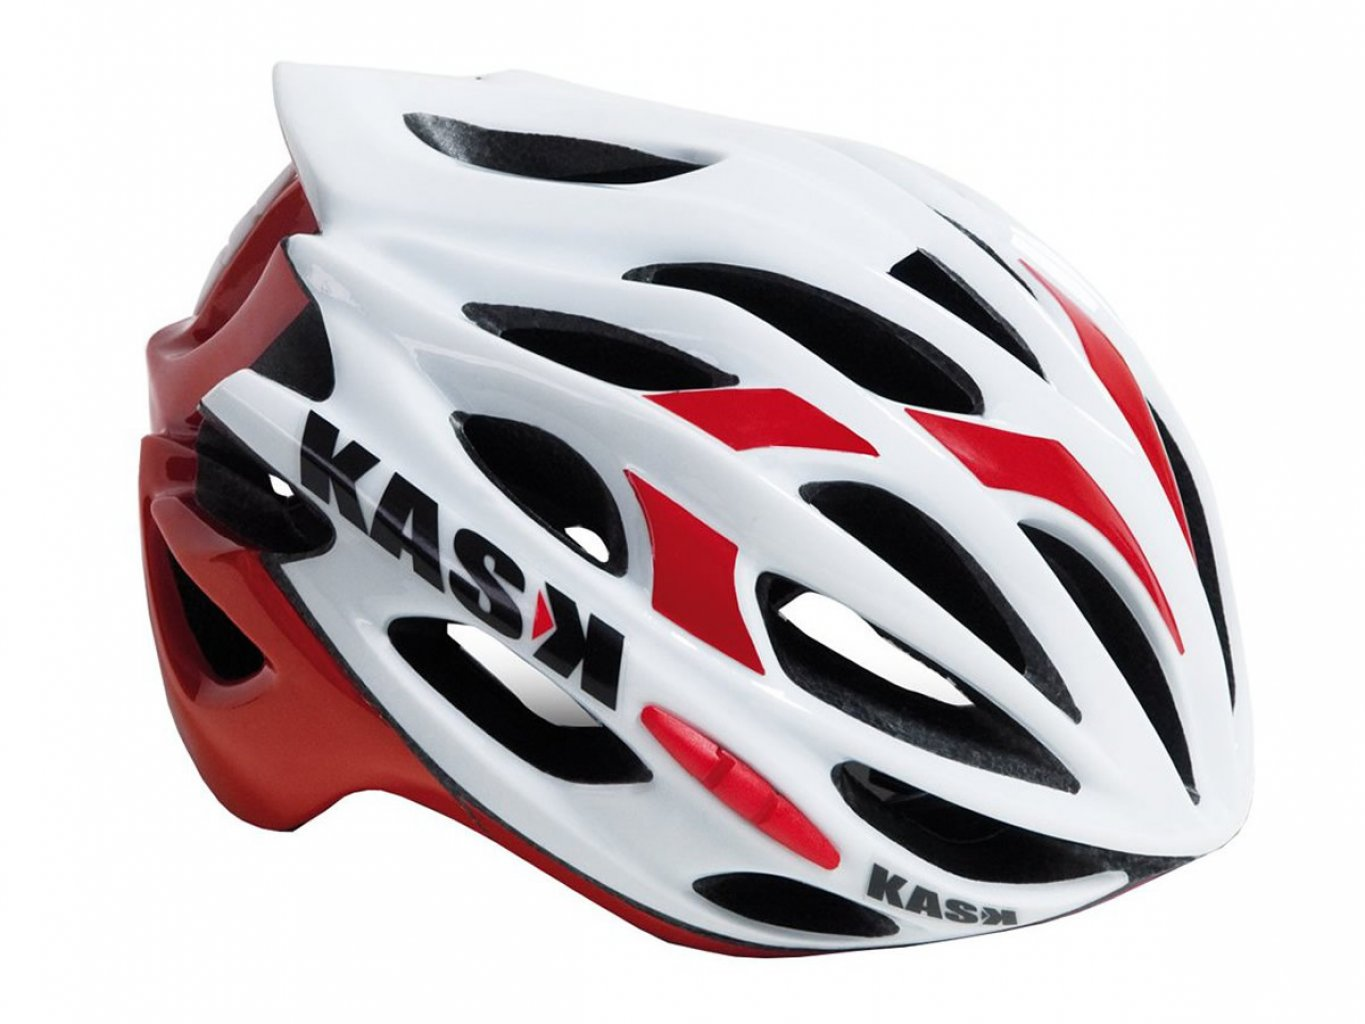 Kask Mojito White/Red